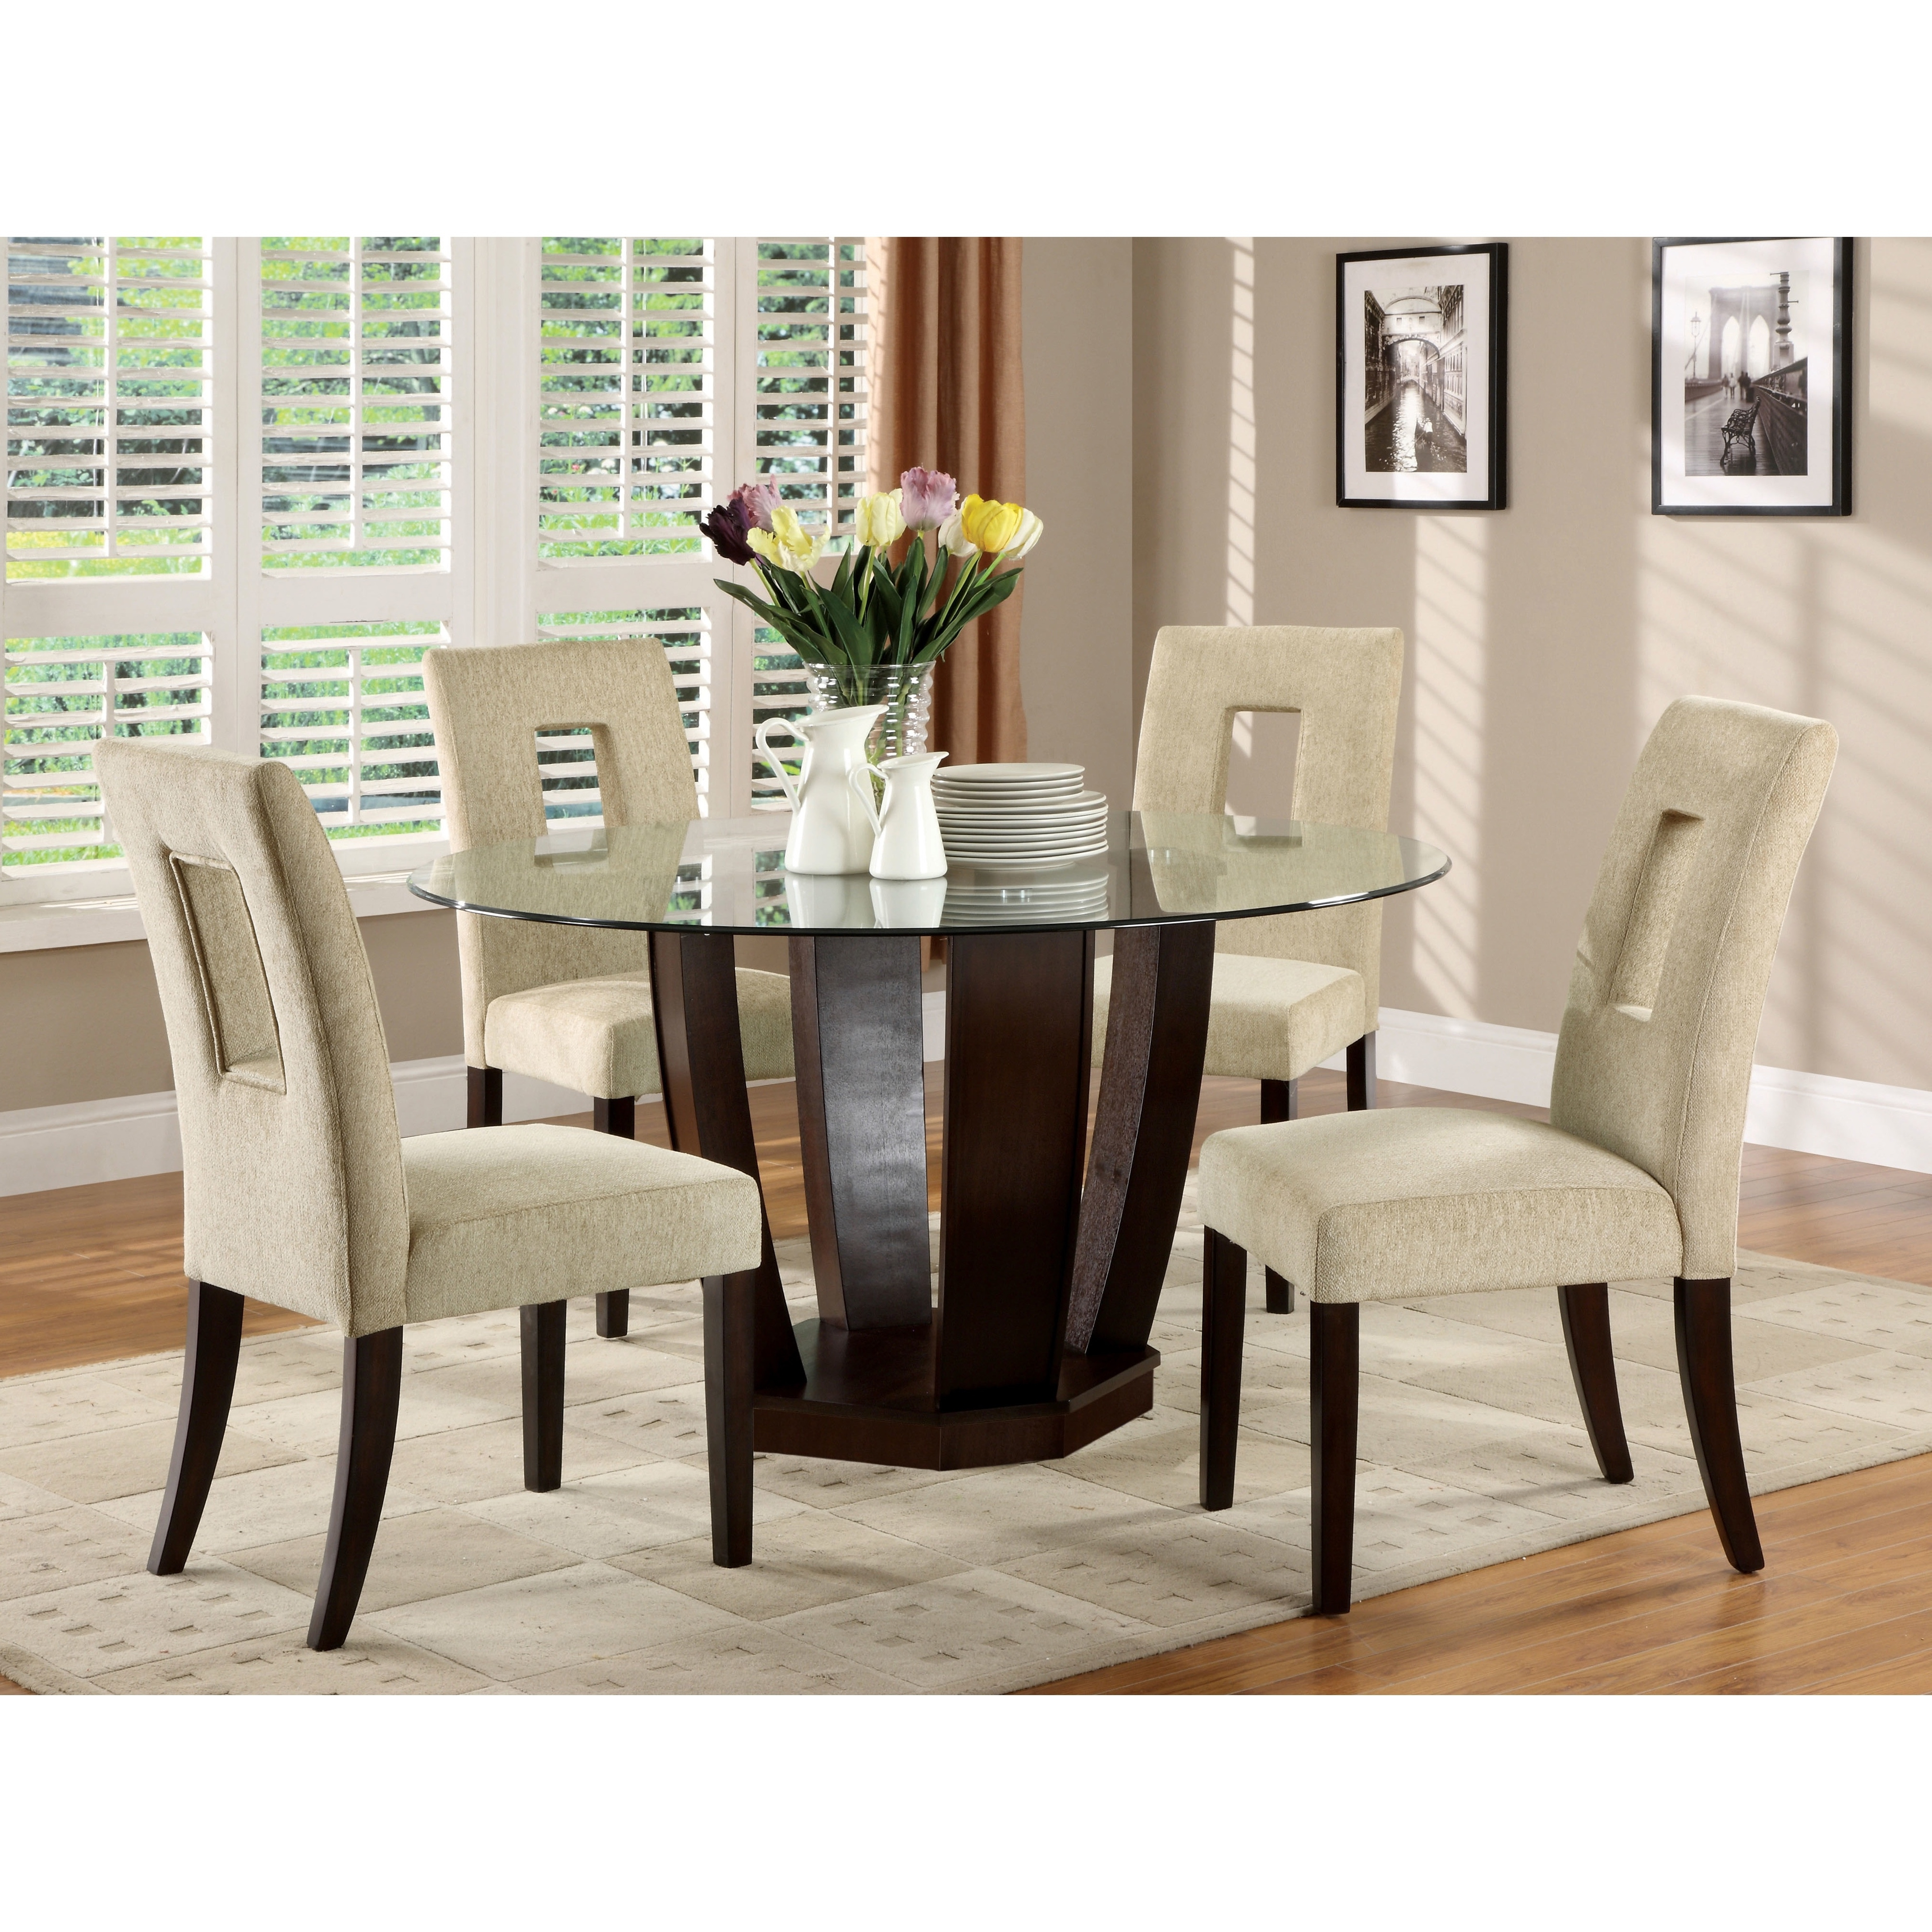 Cheap Dining Room Sets Under 100 Oval Brown Polished Teak Dining Layjao